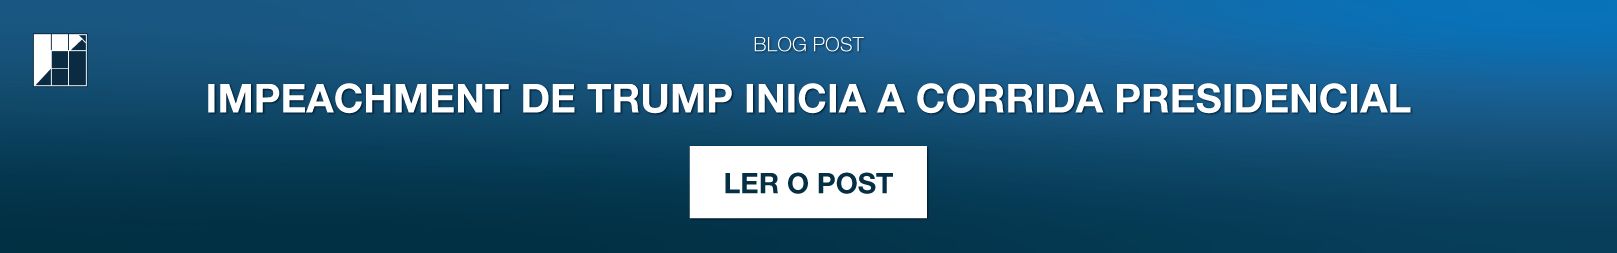 chamada para o post sobre impeachtment de trump